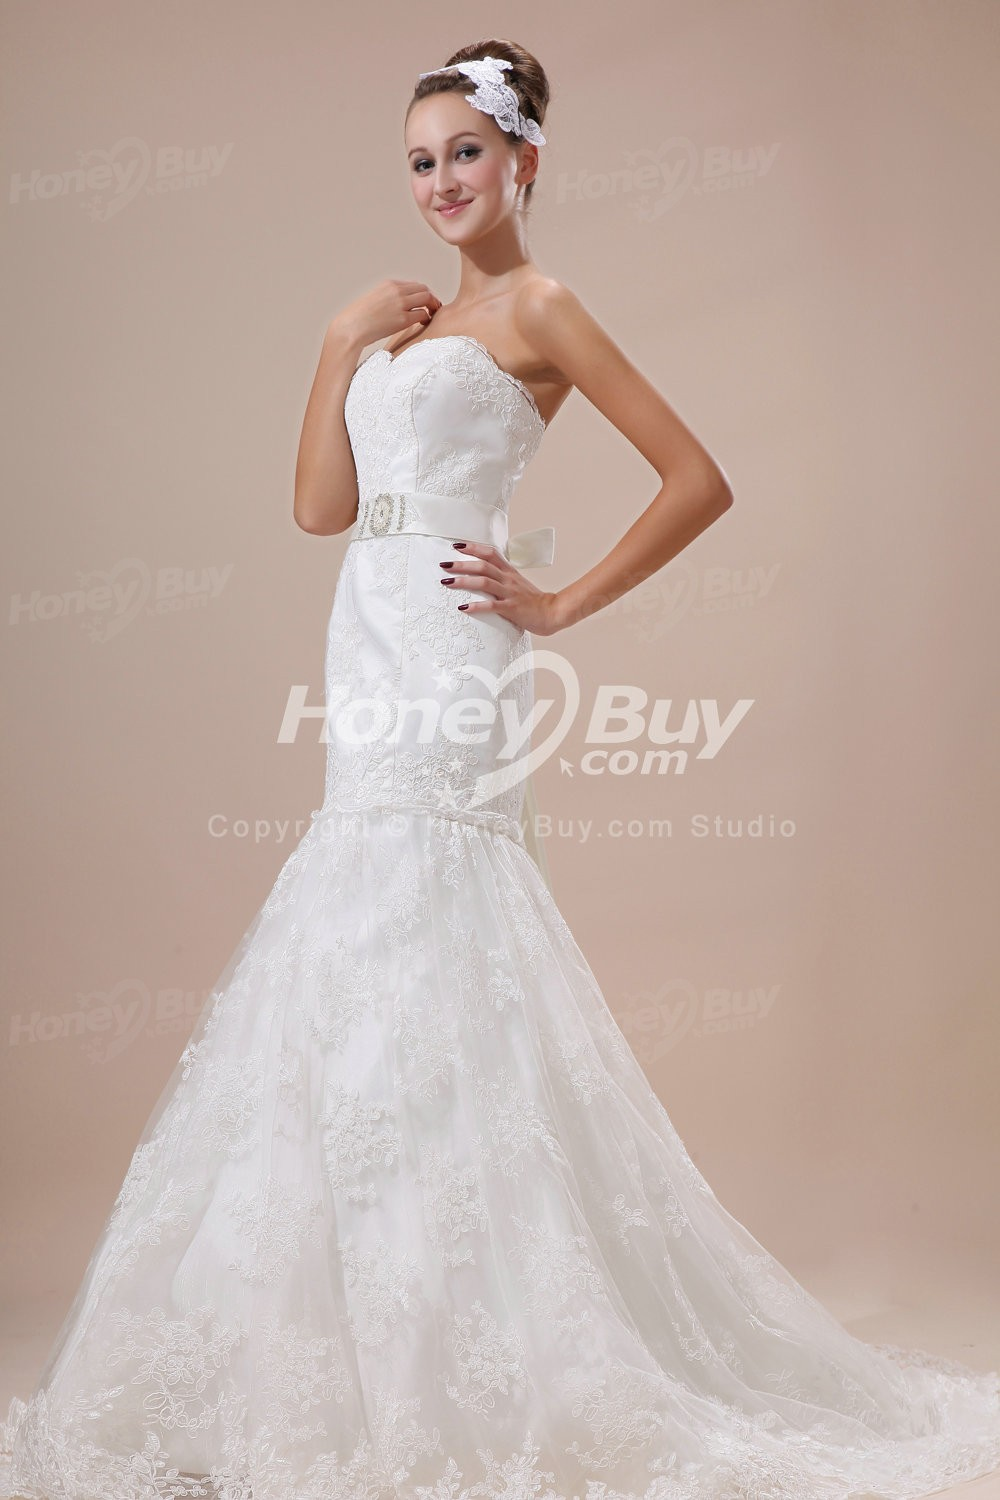 Wedding dress styles for different body shapes for Wedding dresses by body shape